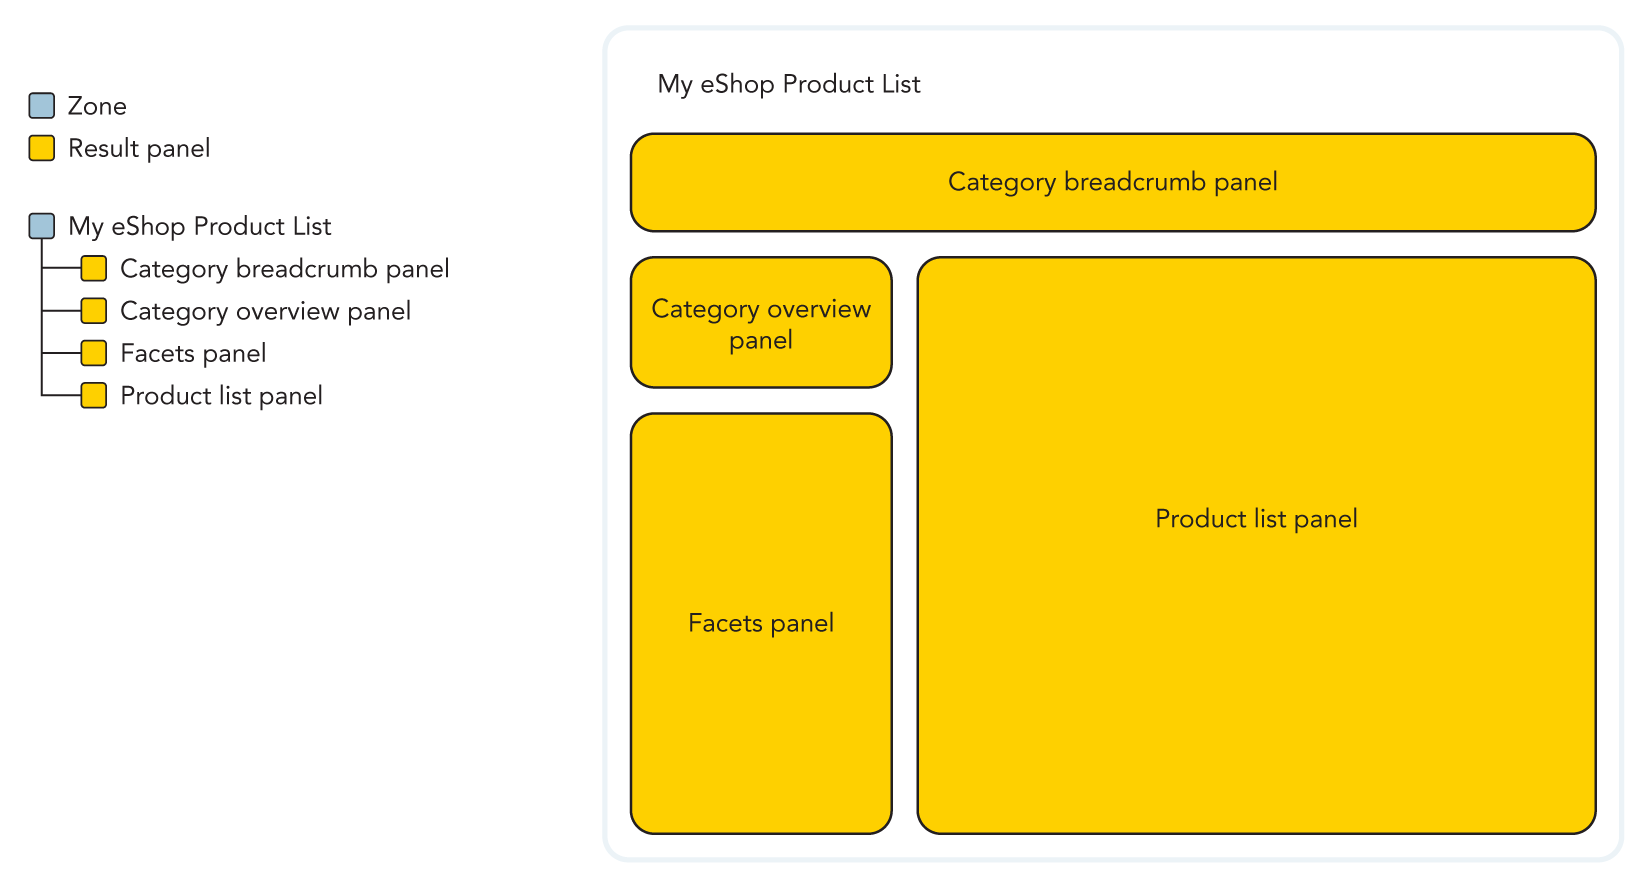 Illustration of the panel hierarchy of a product listing page